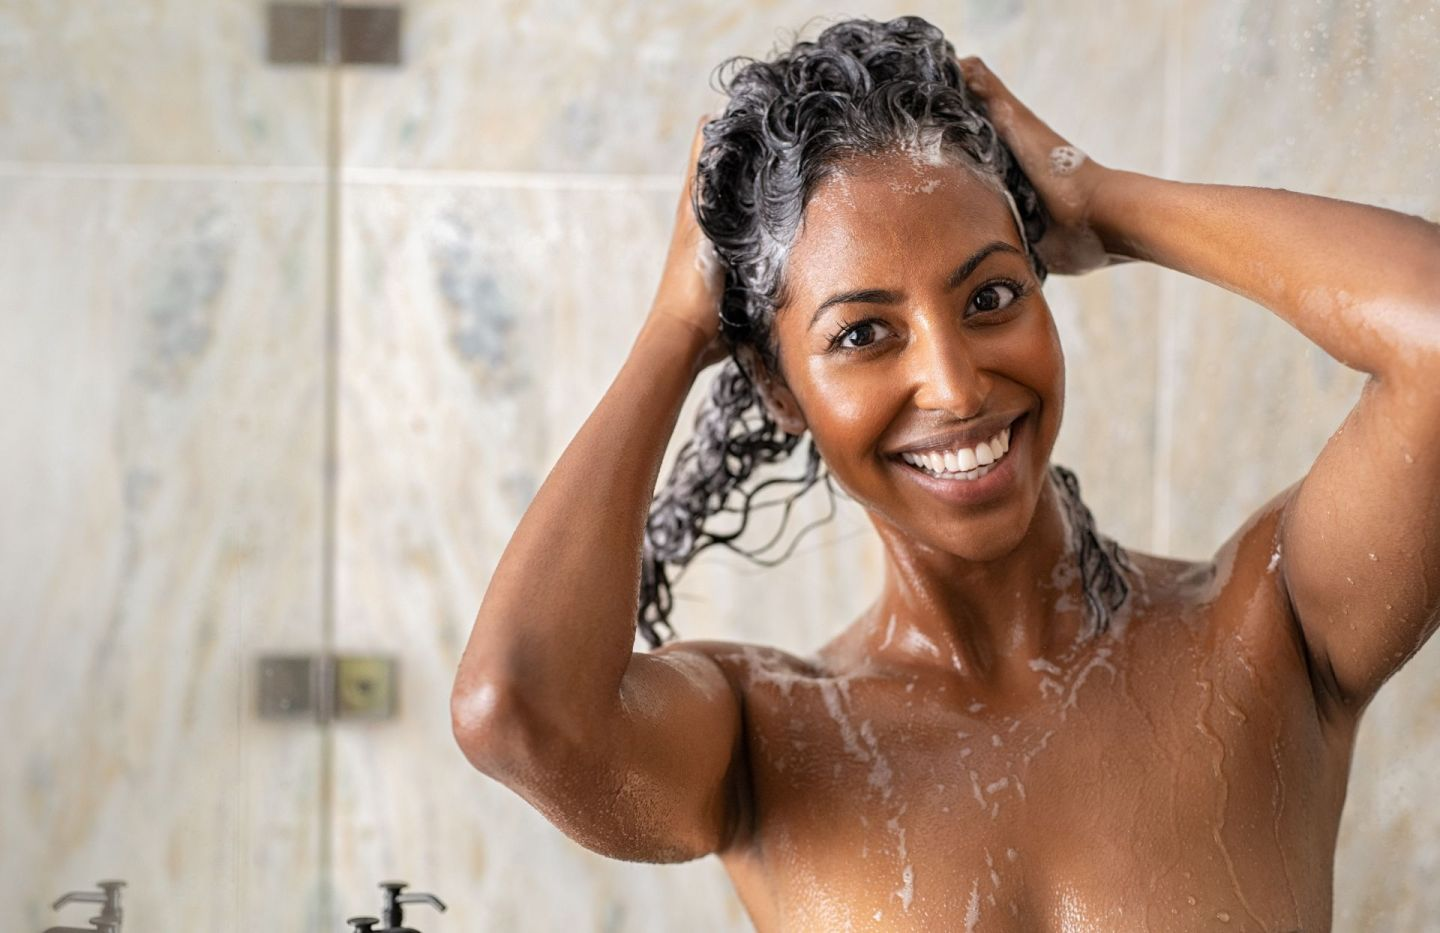 Shampoo Bar For Washing Natural Hair – We've Got 8 Of The Best!